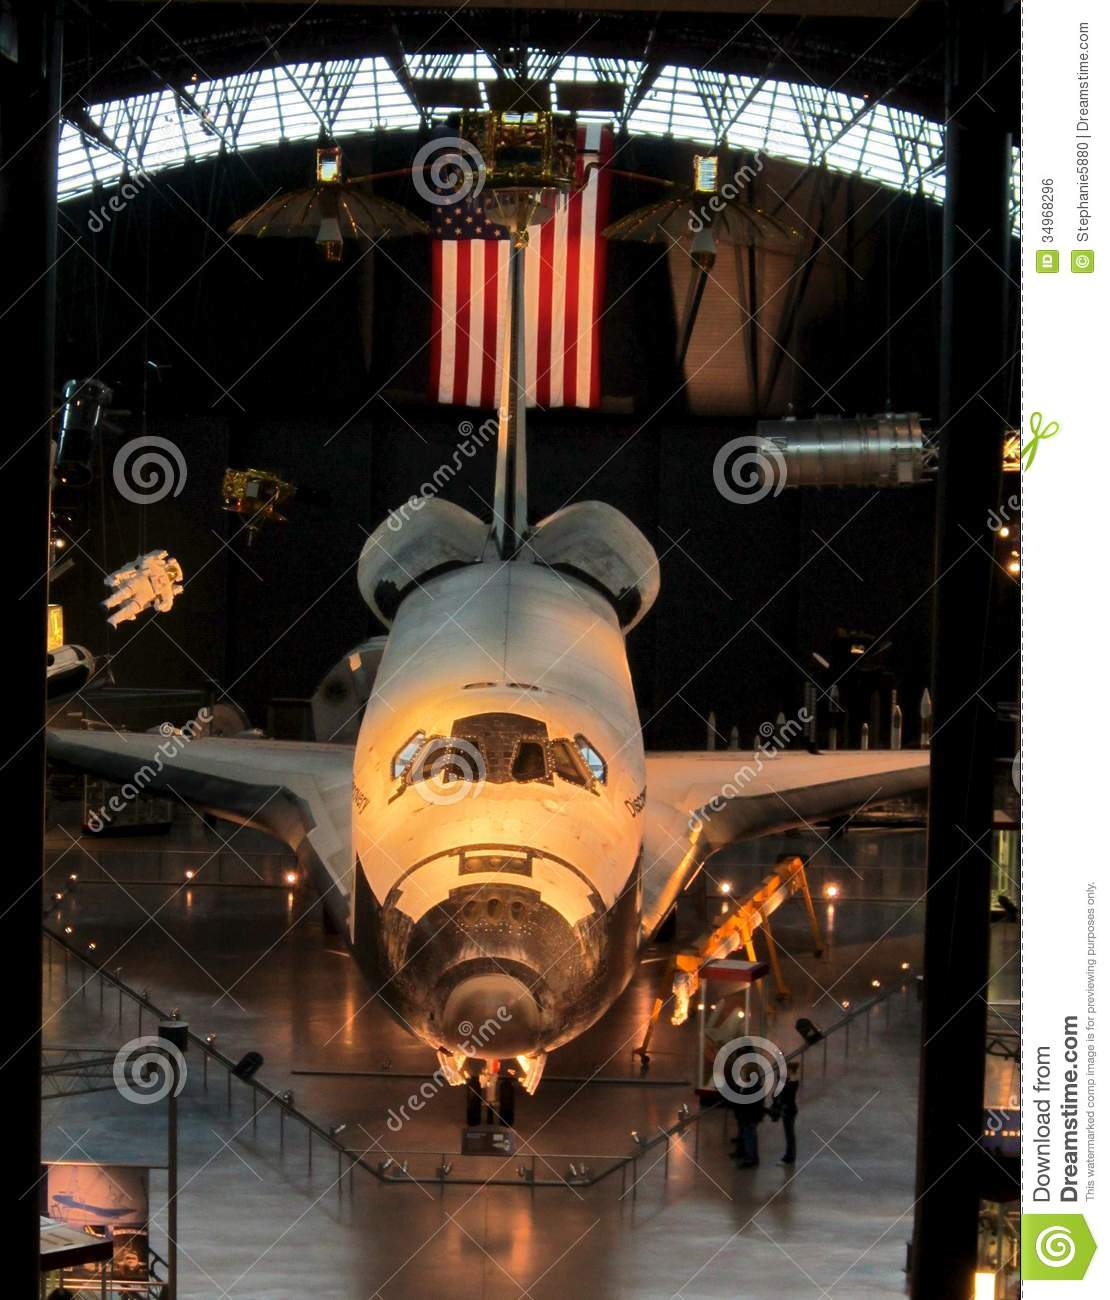 NASA Air And Space Museum Shuttle Editorial Photo - Image ...